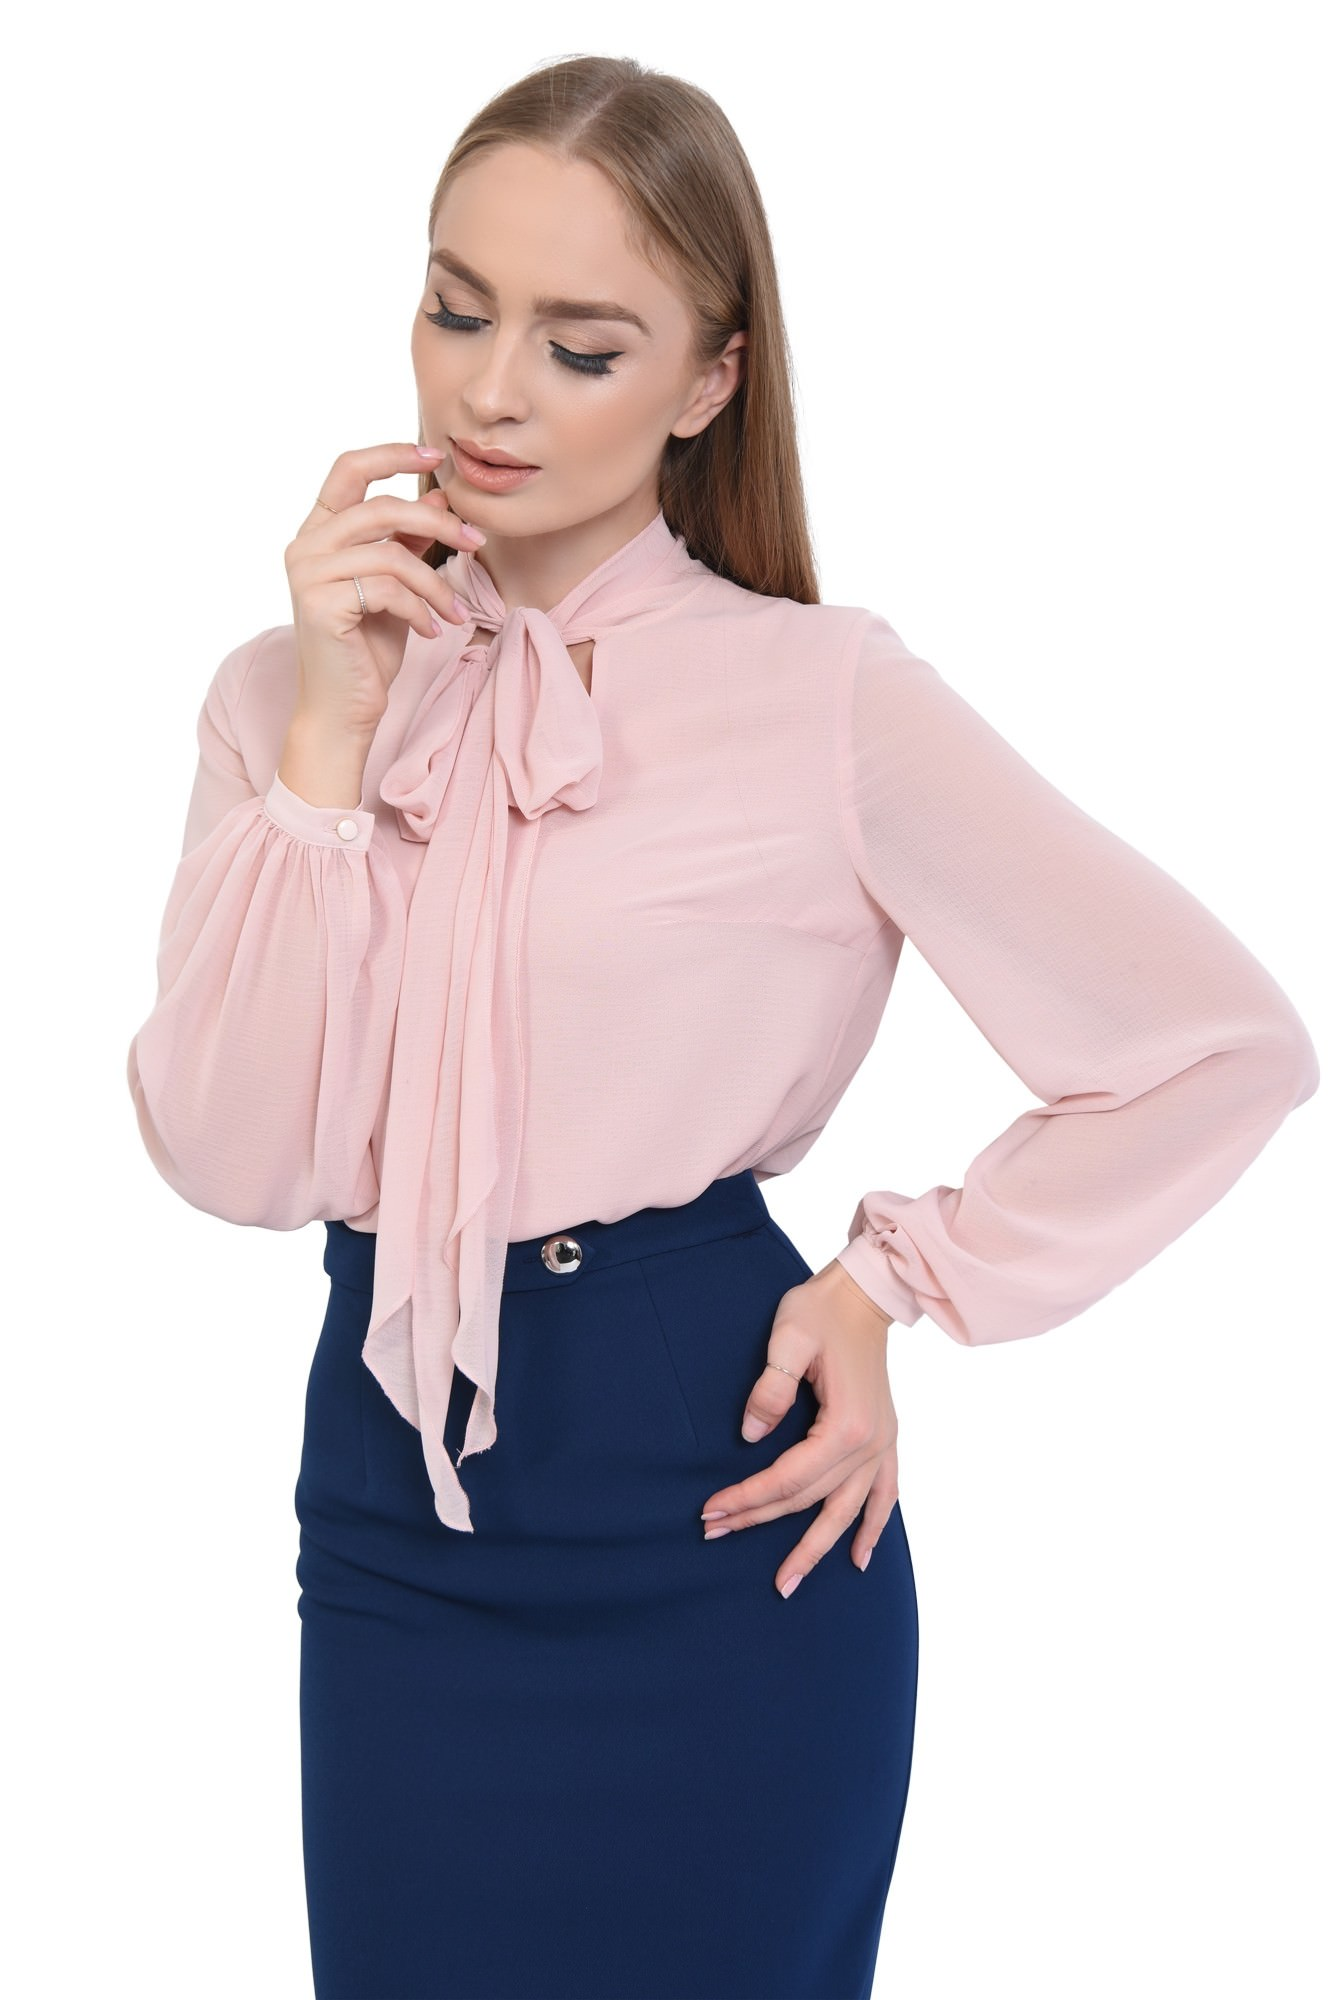 2 - BLUZA OFFICE BL 290-ROZ